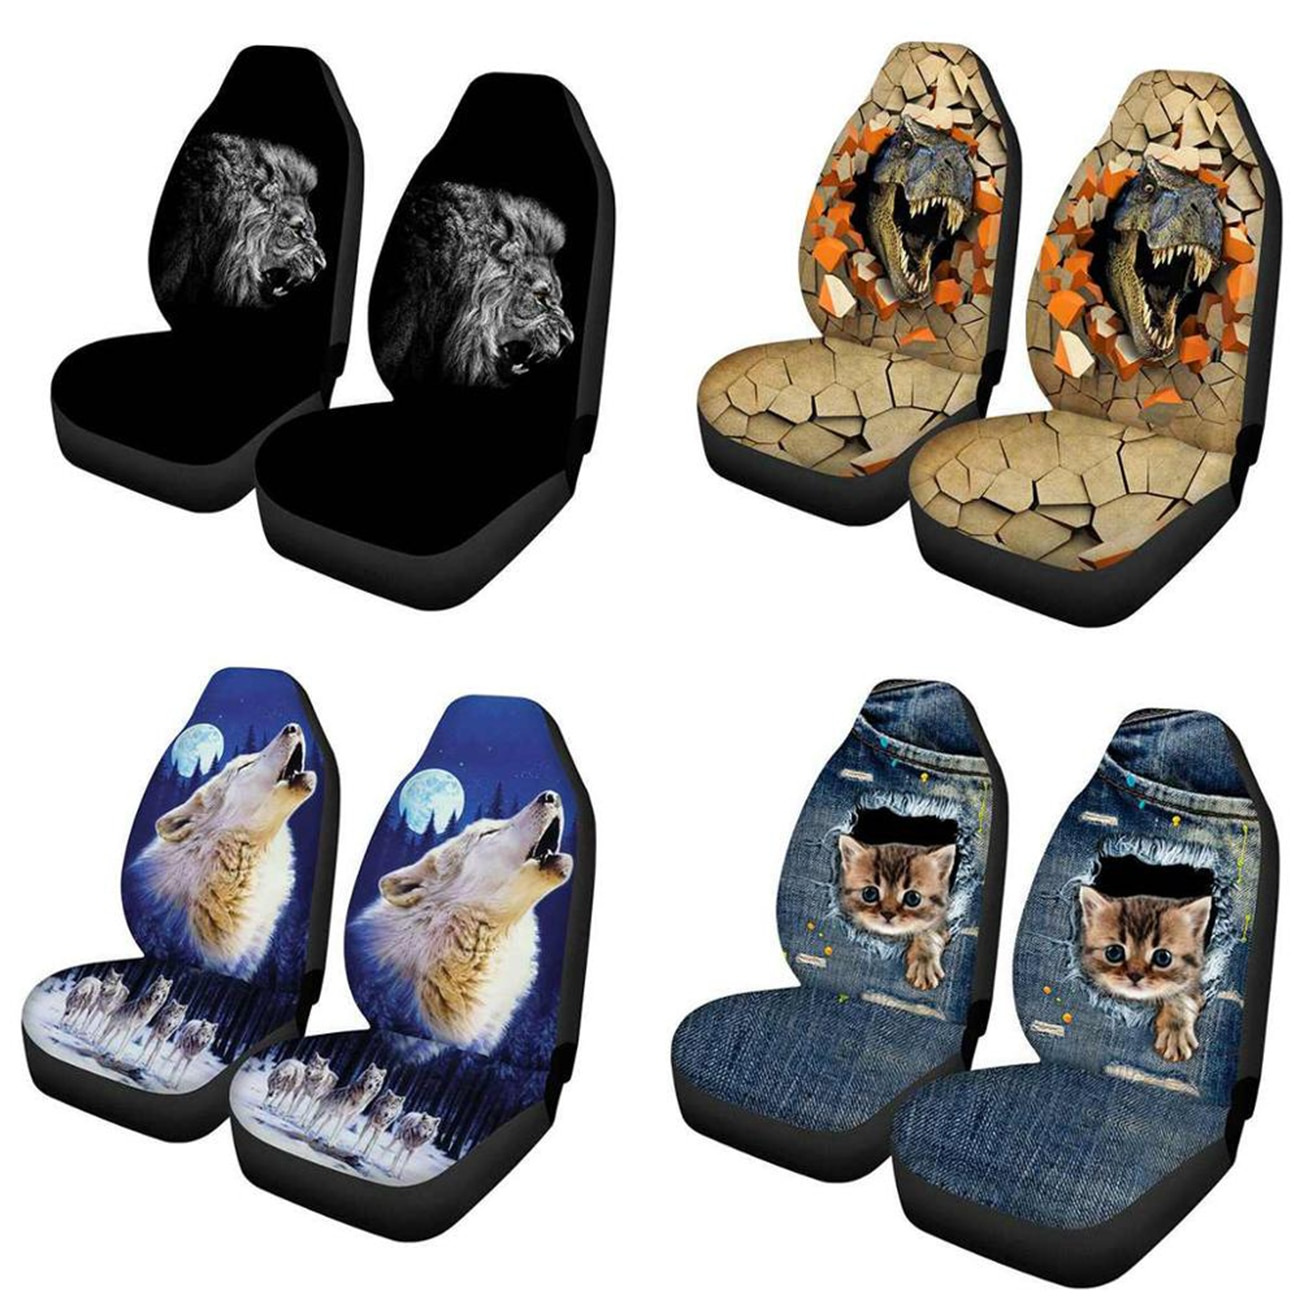 Car Styling Auto Seat Cover Full Protector Interior Accessories 3D Animal Wolf Printing Universal Covers